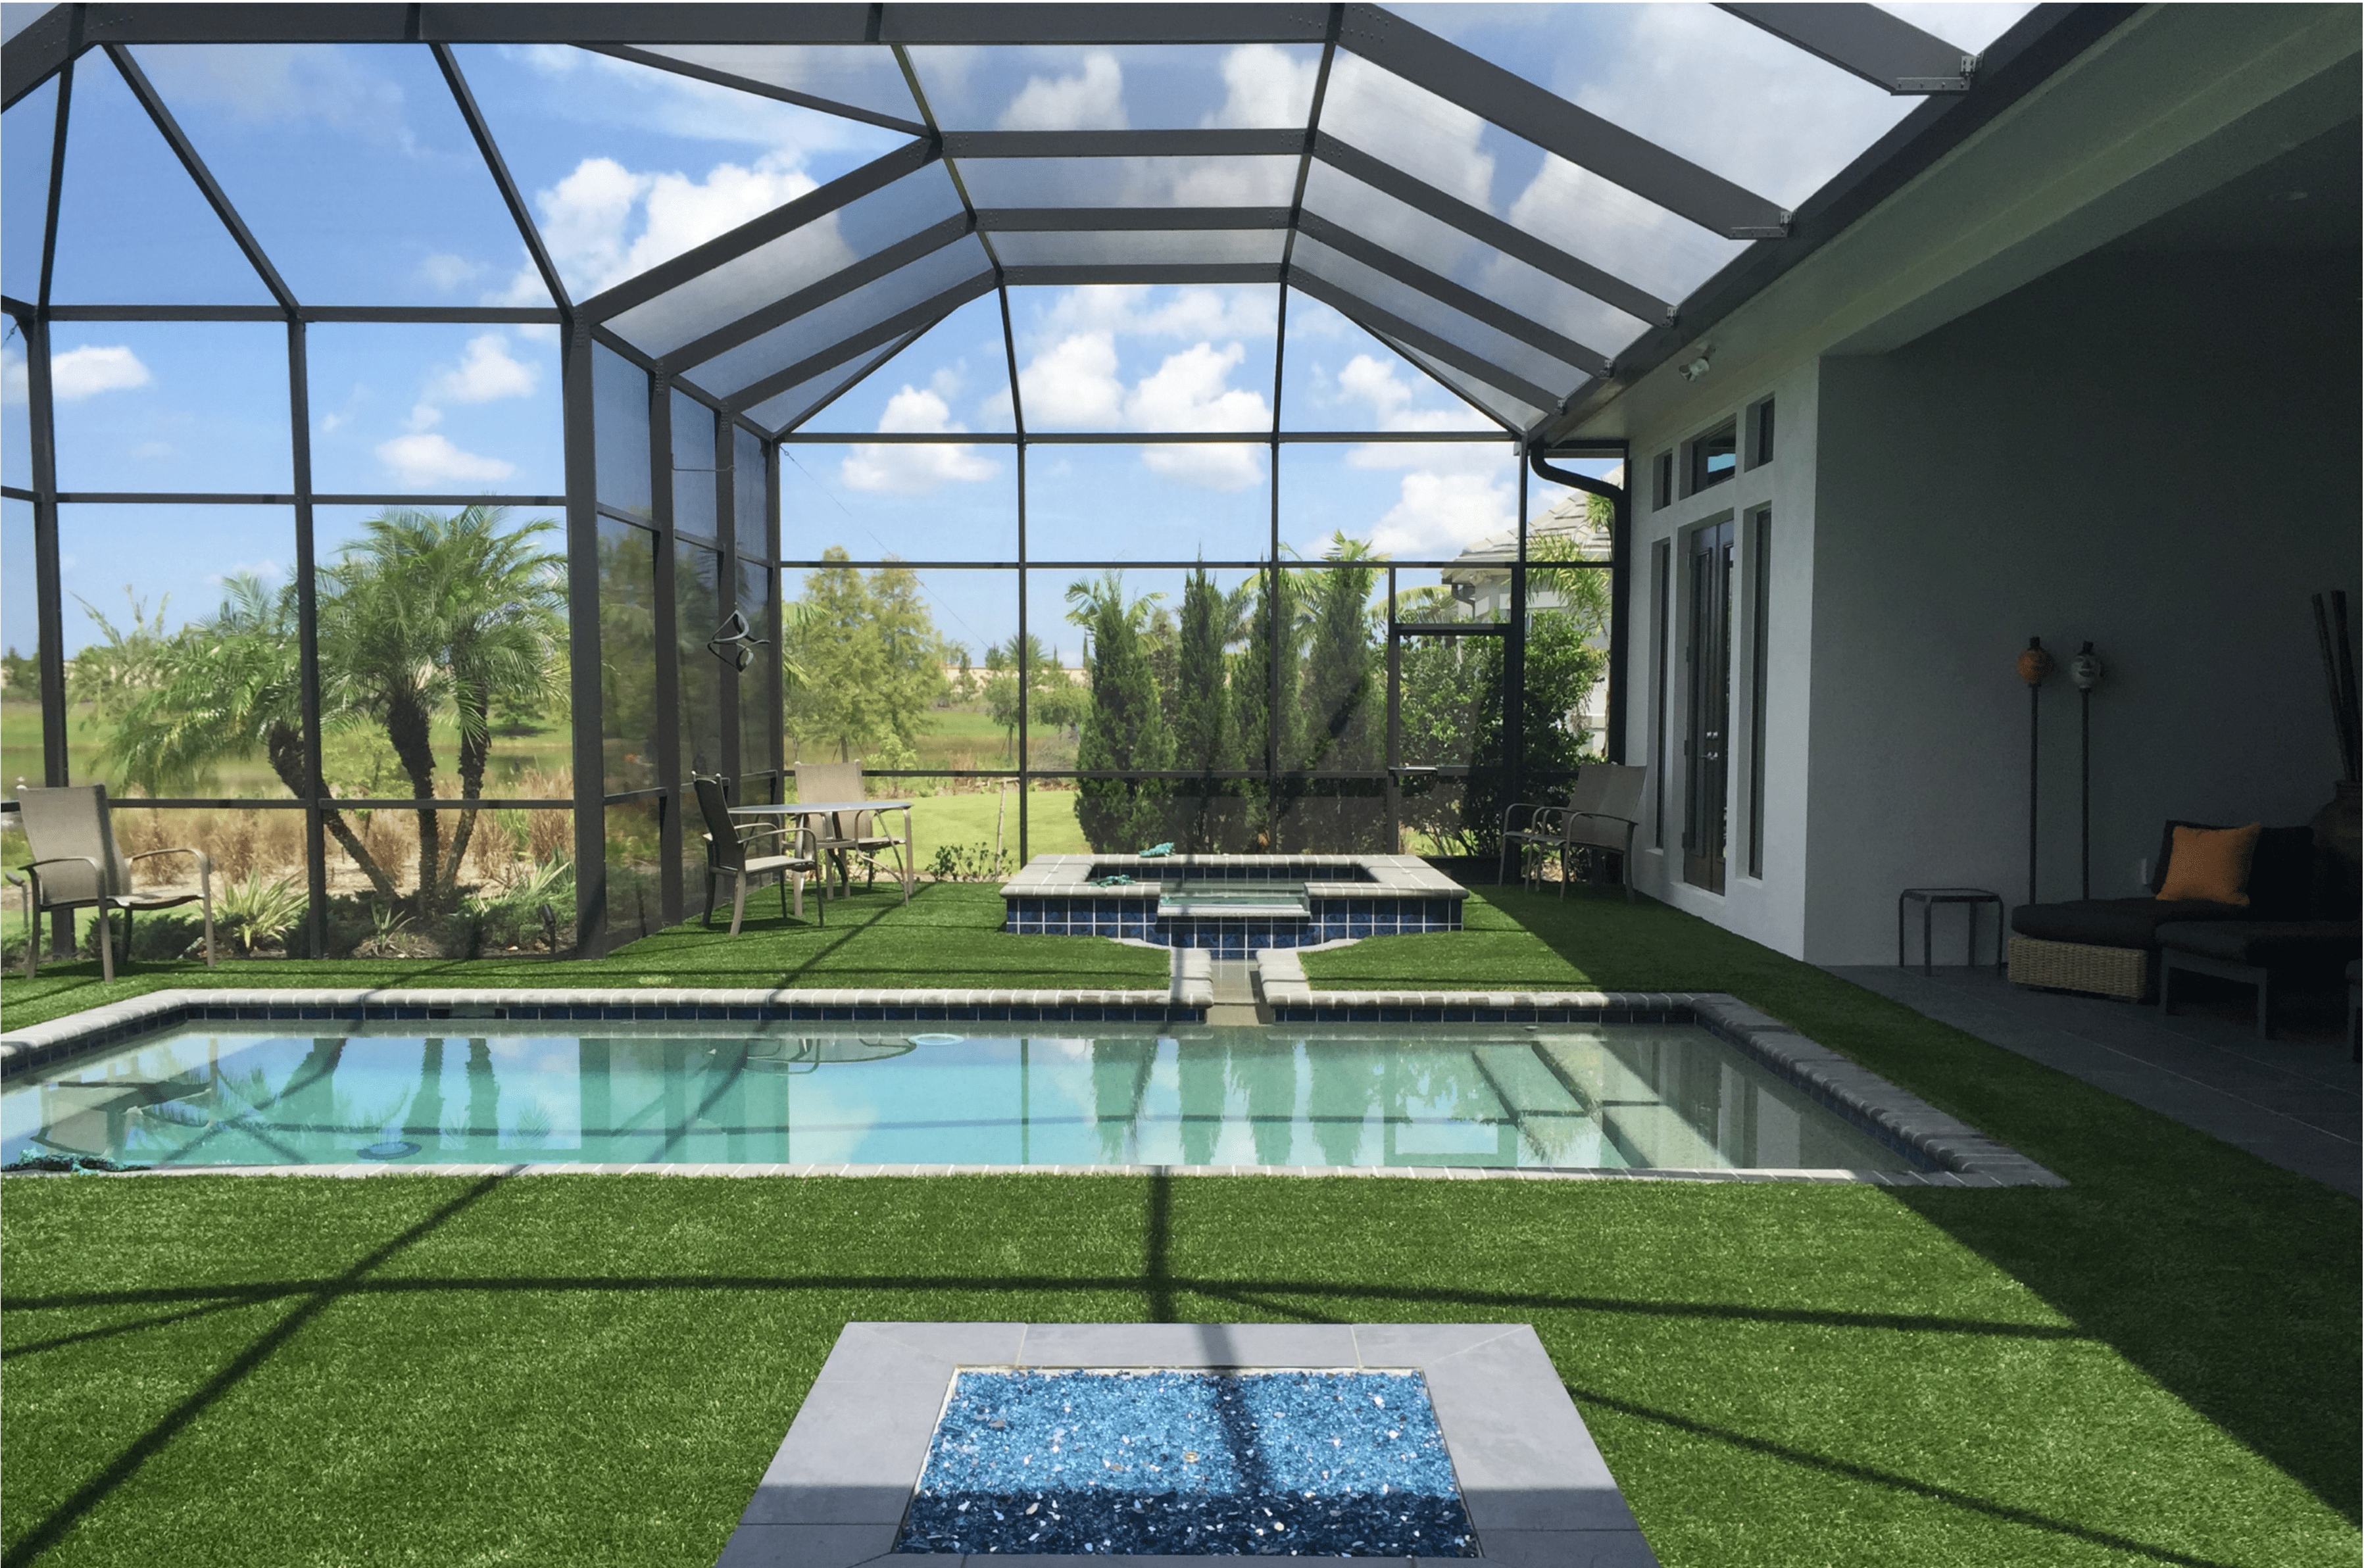 The Benefits of Artificial Pool Turf - Just Like Grass